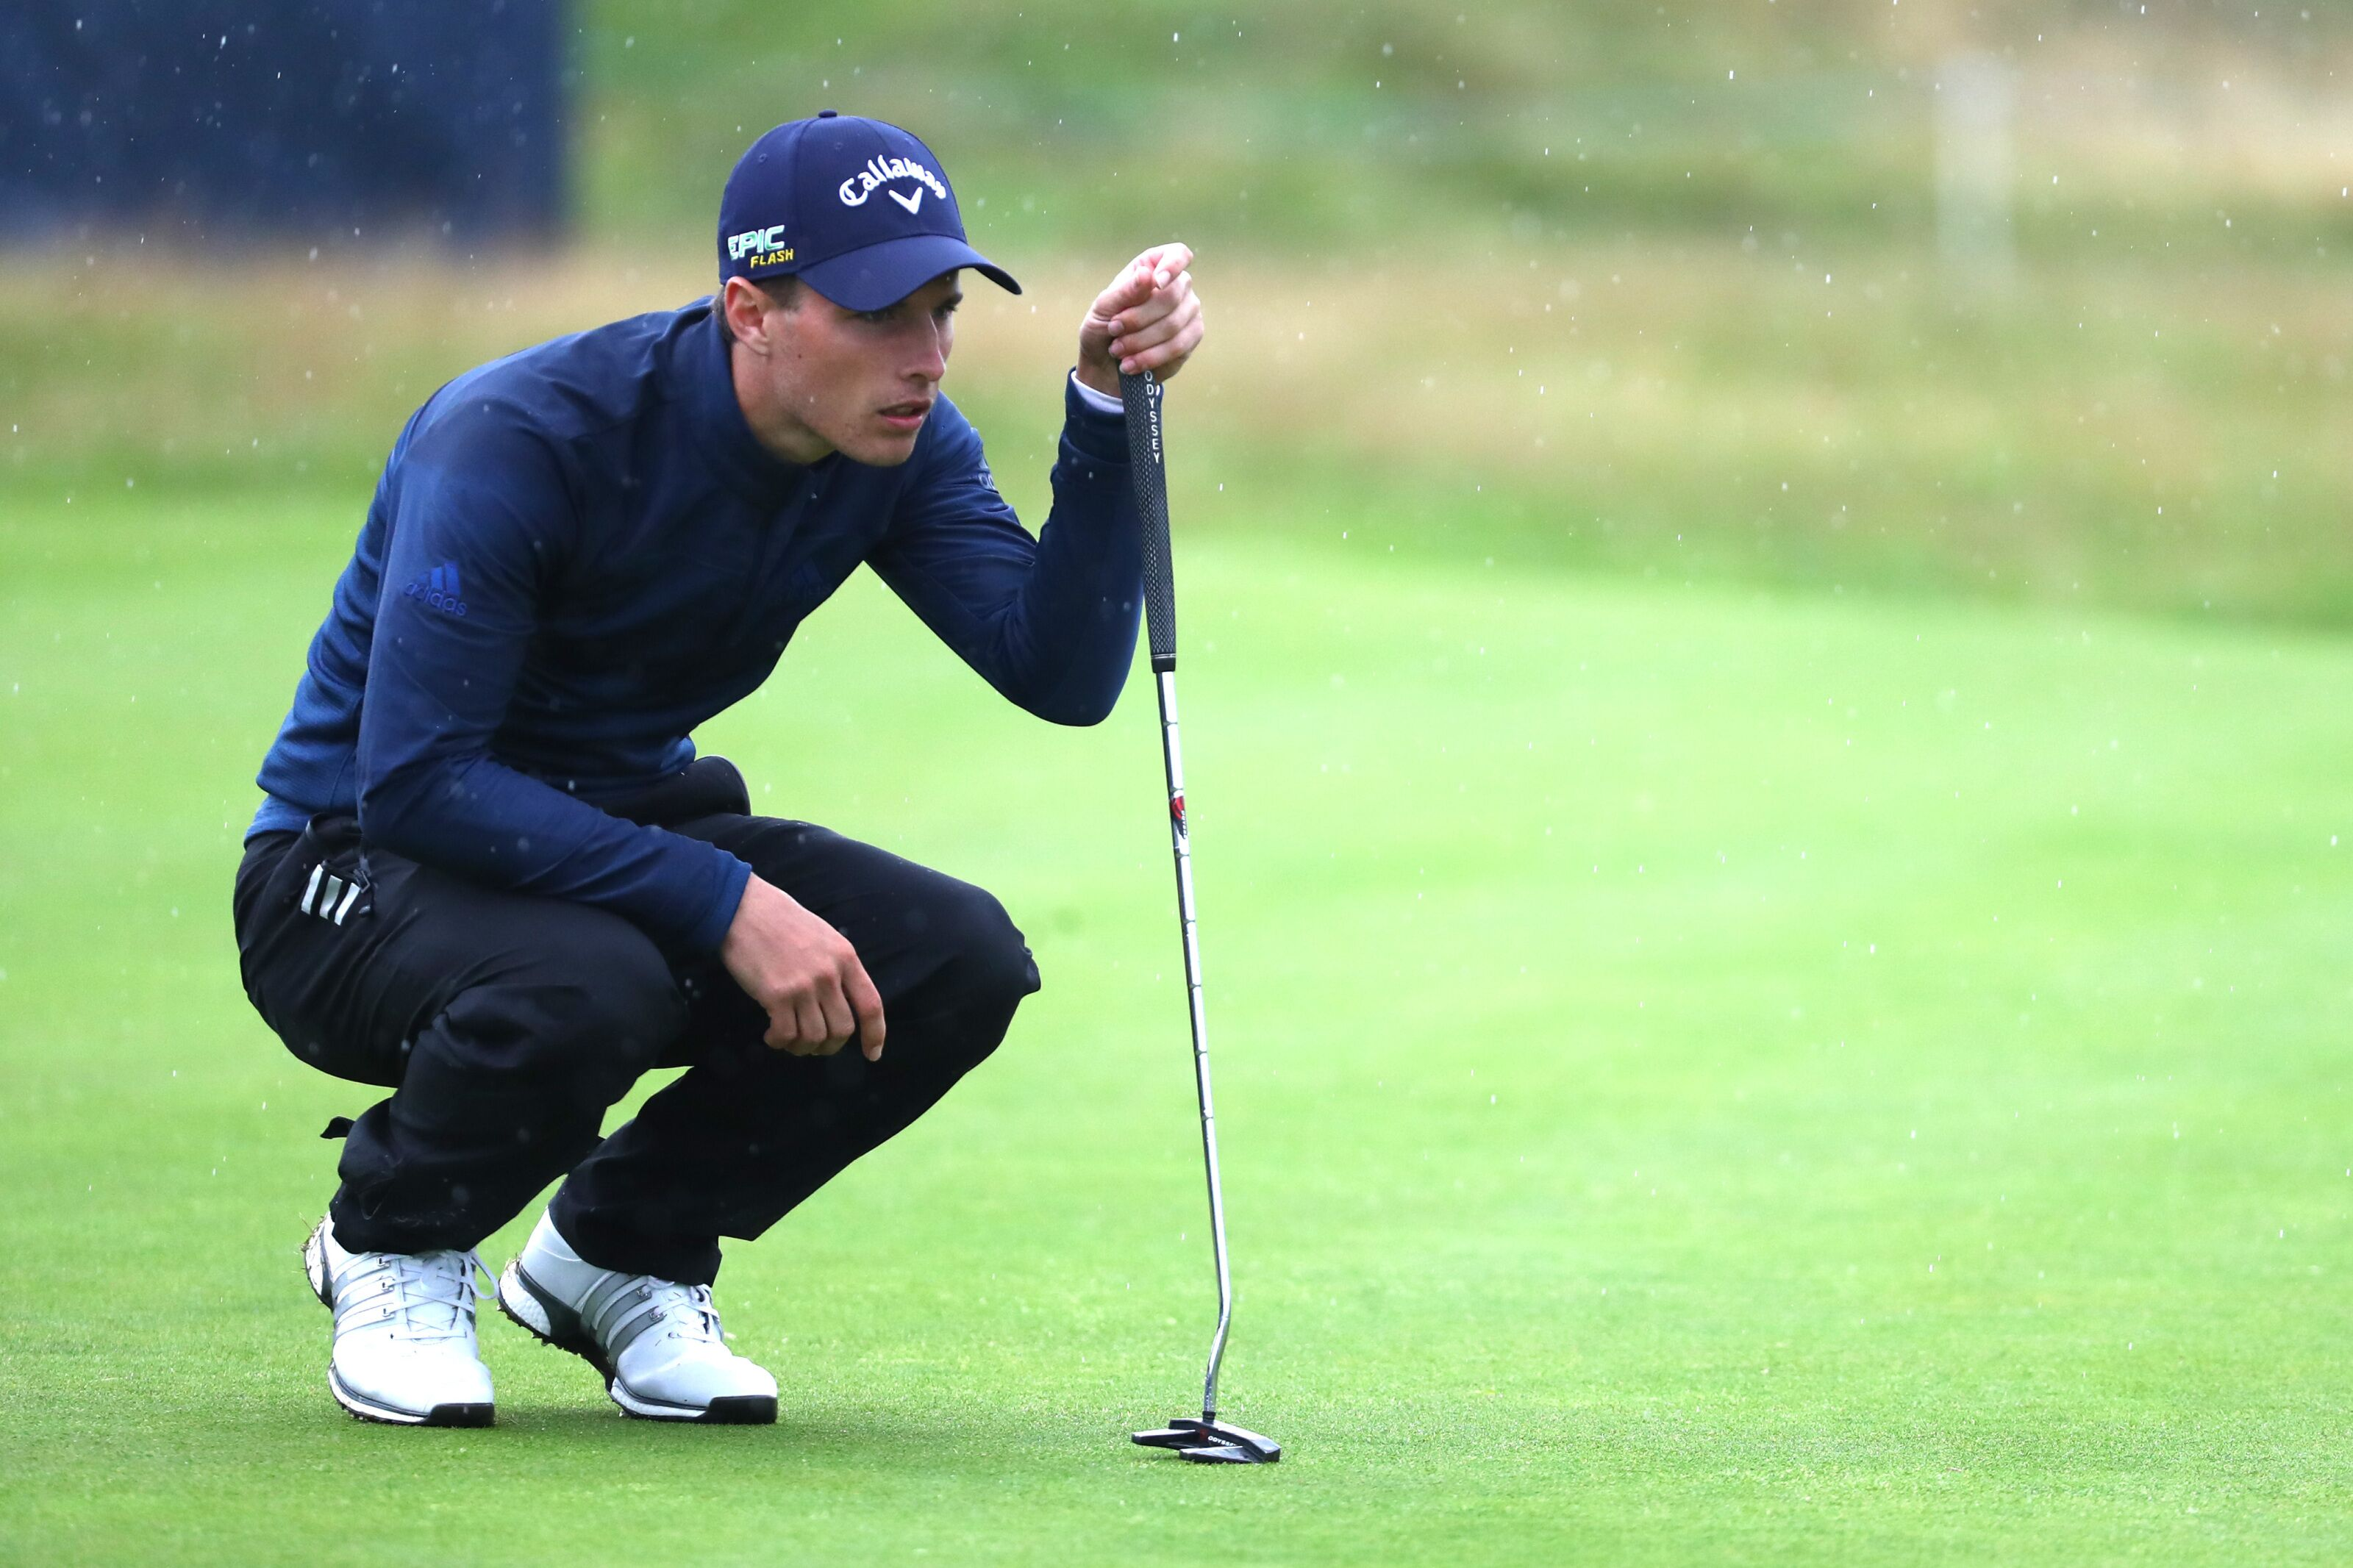 Alfred Dunhill Links Championship: Matthew Jordan jumps into lead